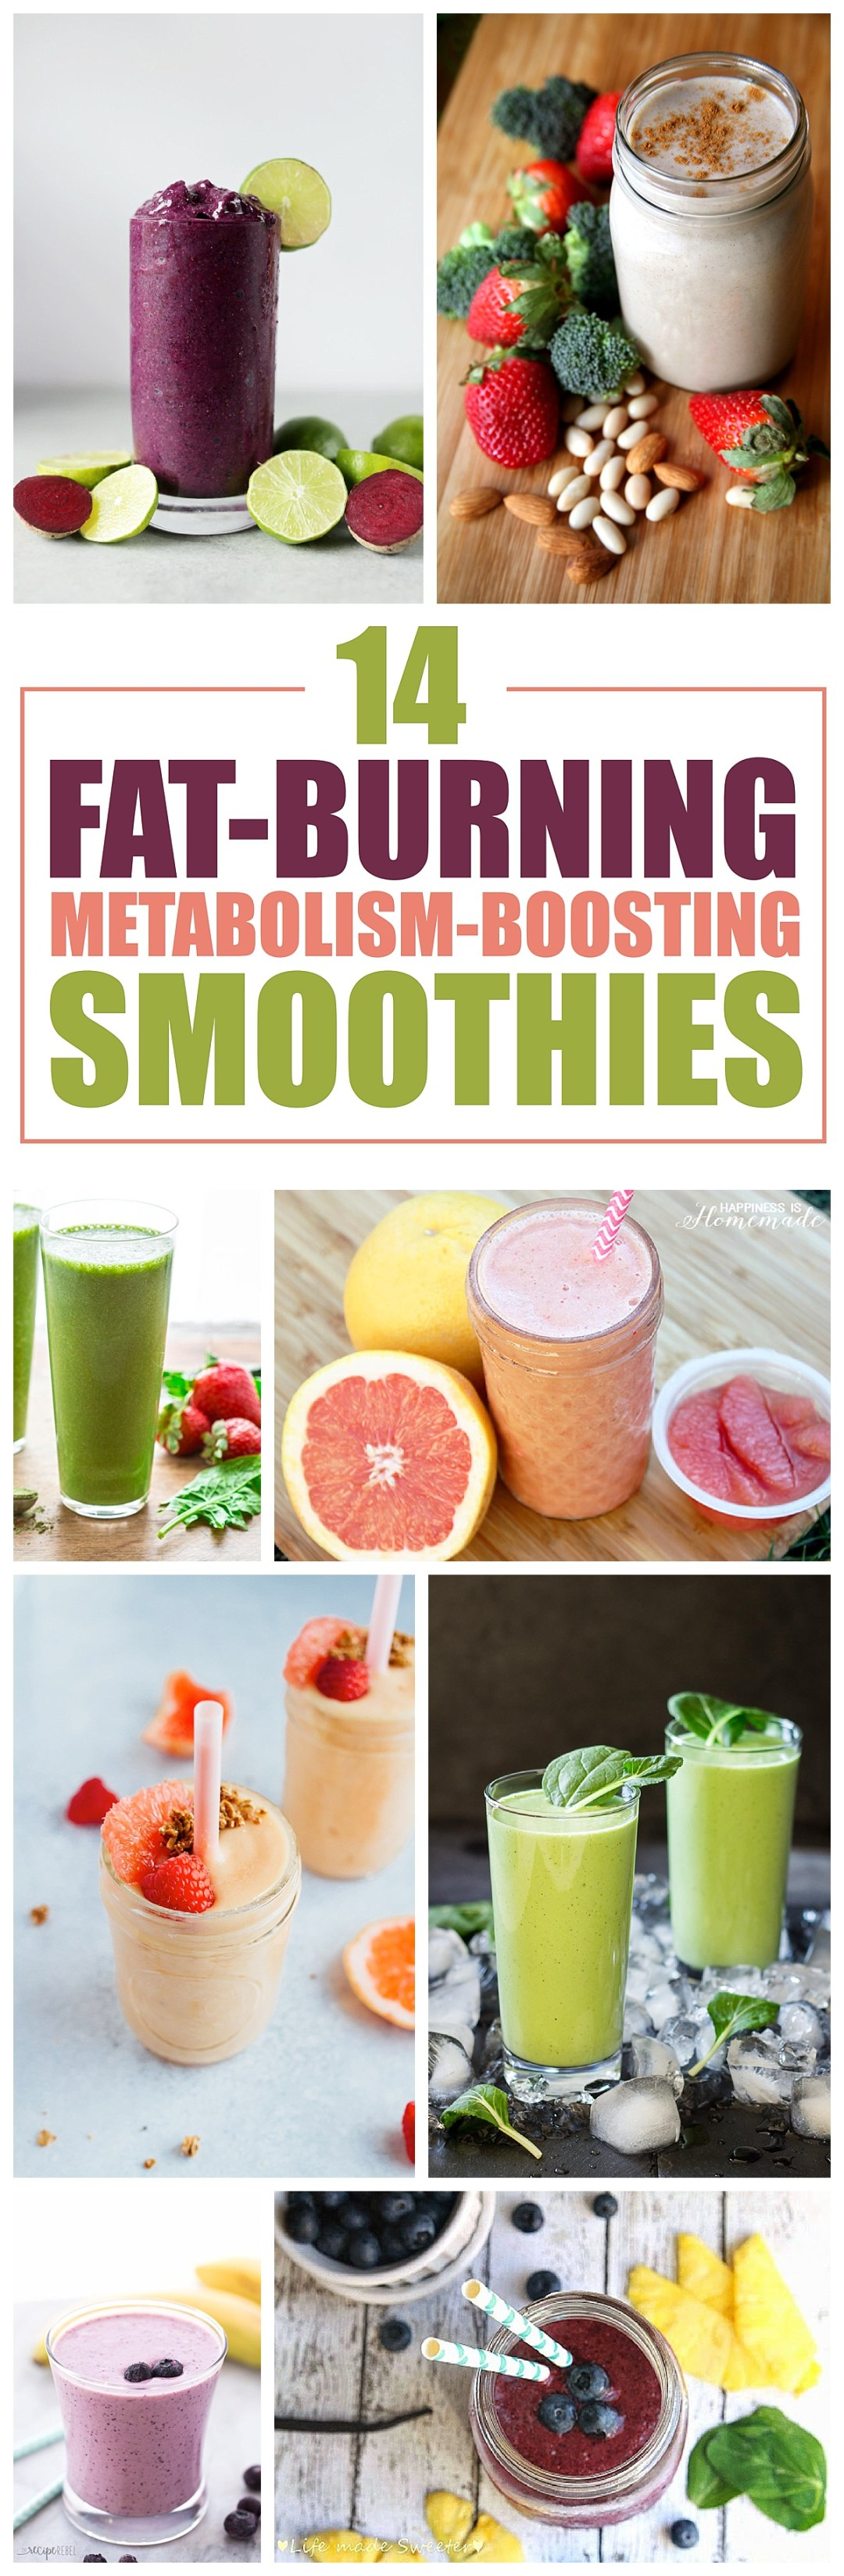 Metabolism Smoothie | Fat Burning Smoothie | Smoothie Recipes | Detox Drinks | Beachbody Smoothies | Shed Extra Pounds | Metabolism Boost Drink | Six Clever Sisters